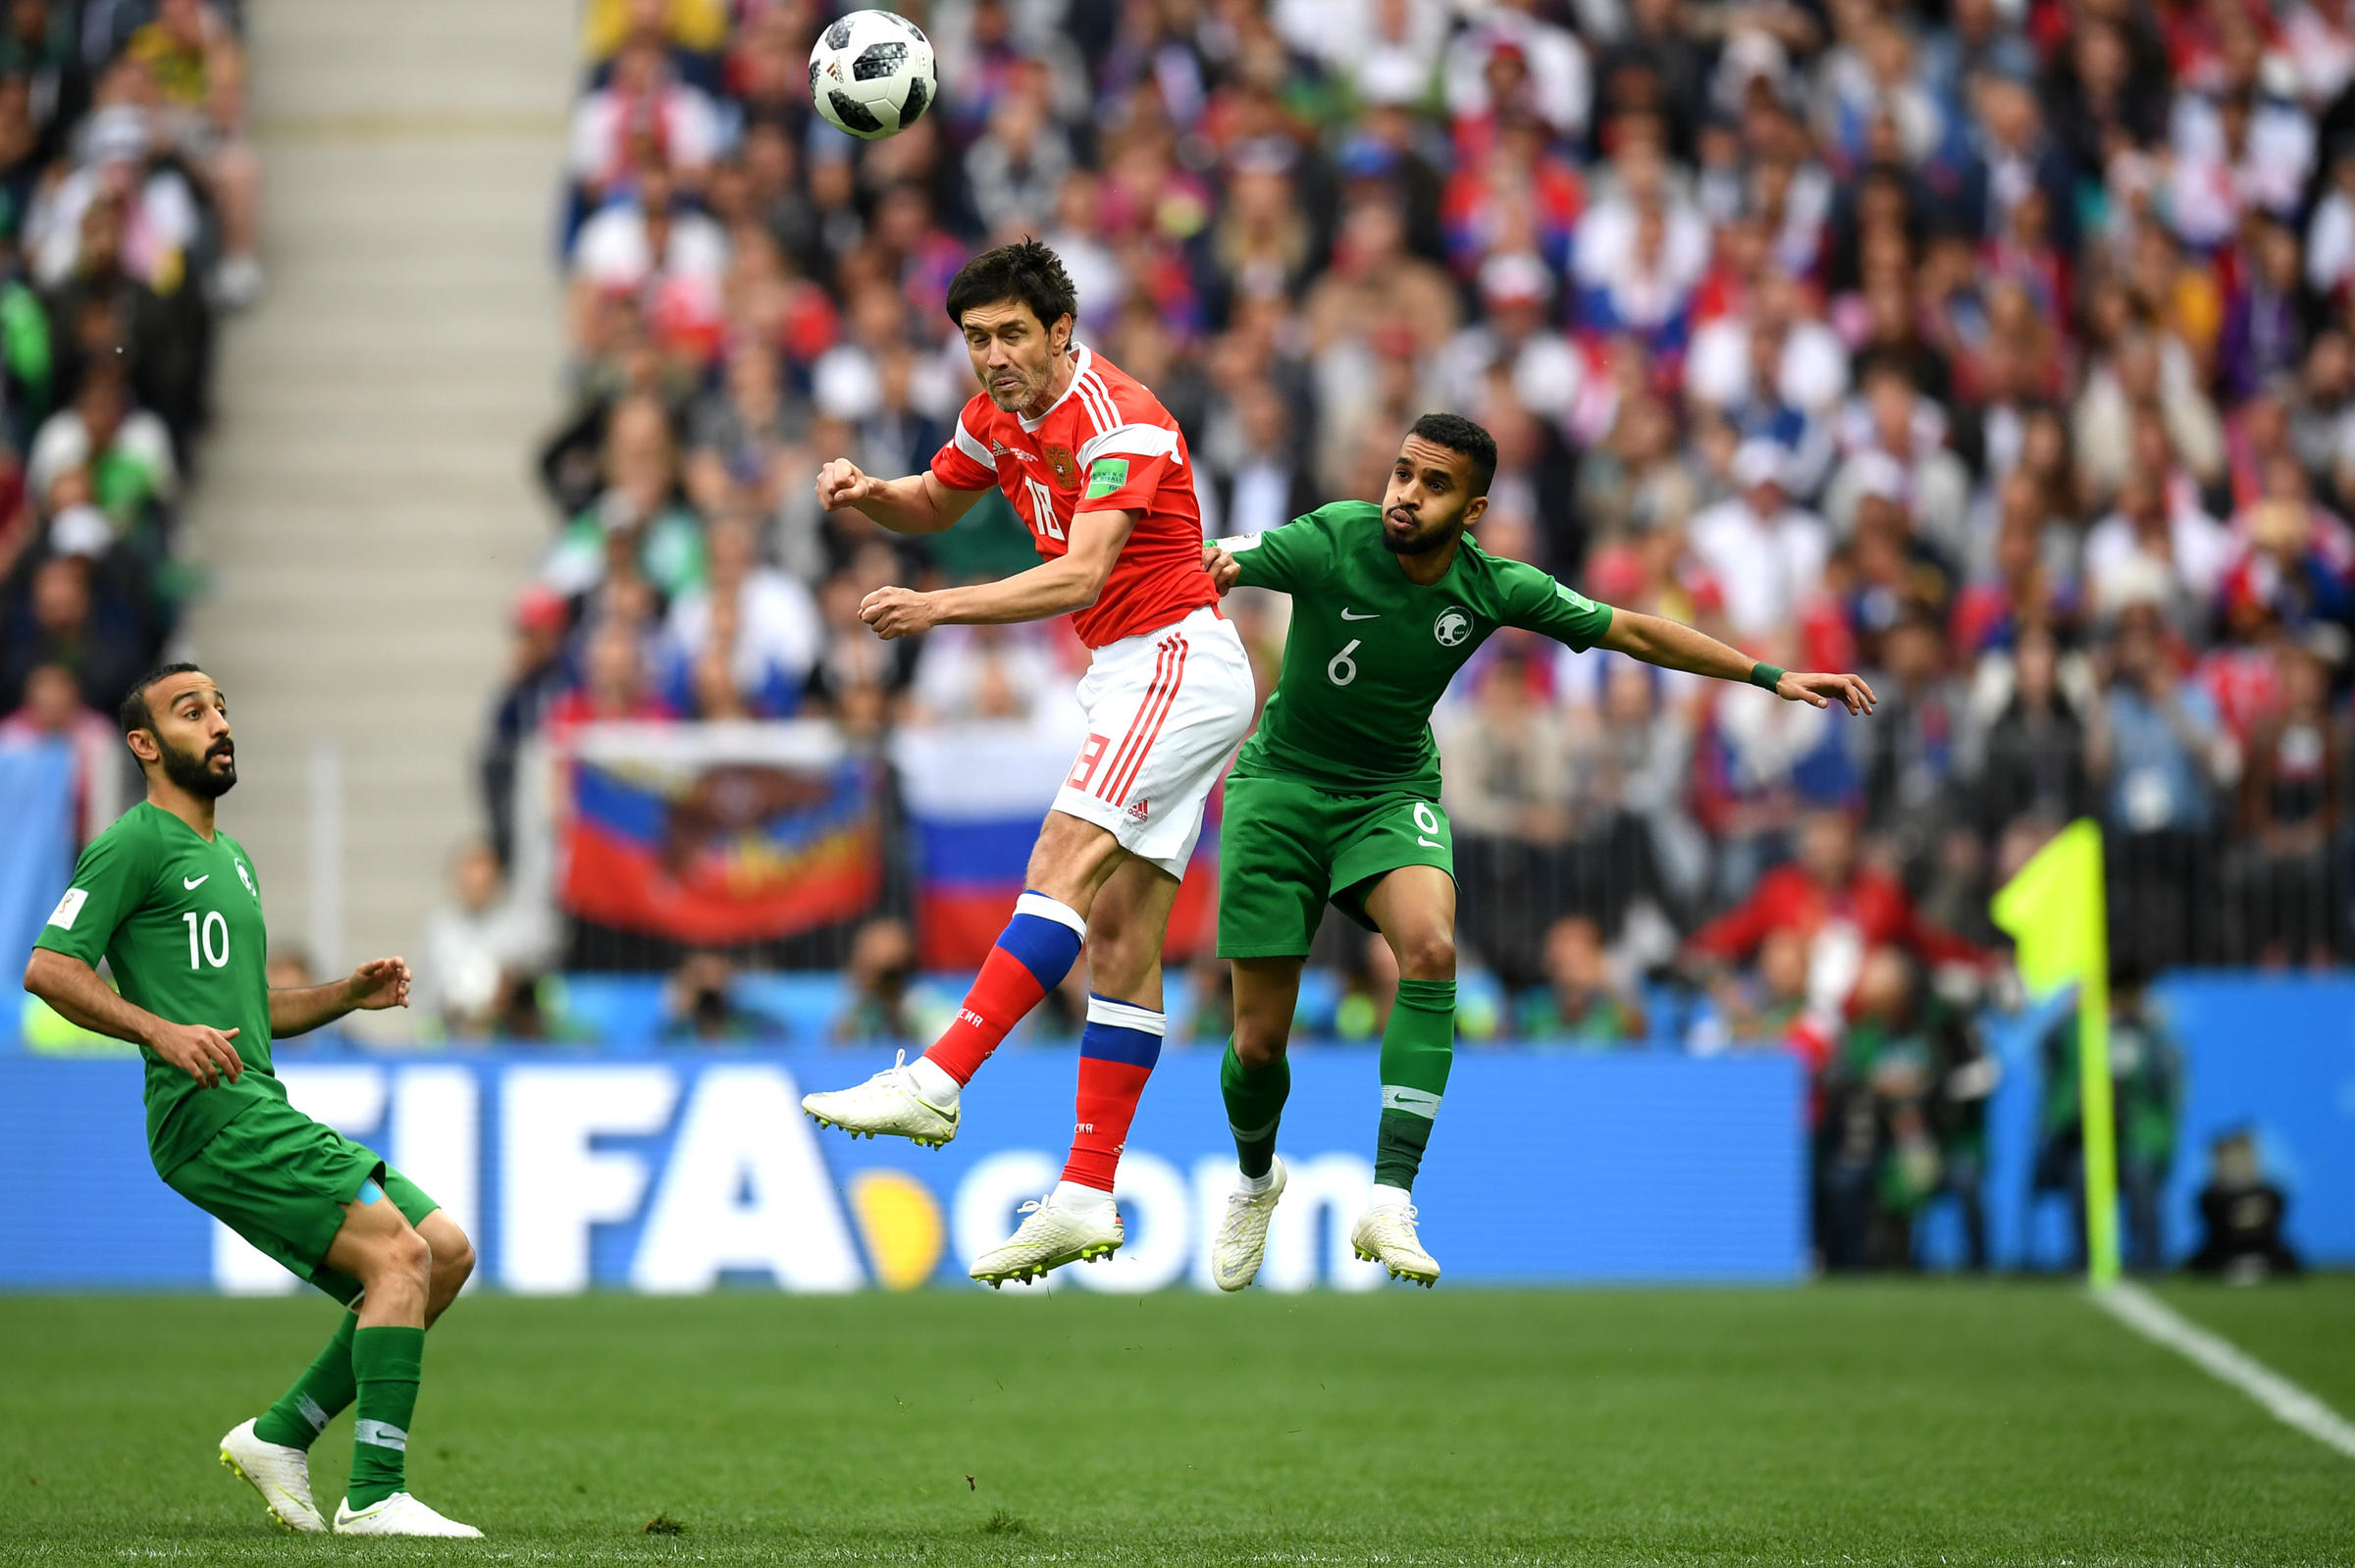 Yury Zhirkov of Russia wins a header Mohammed Alburayk of Saudi Arabia  during the 2018 FIFA World Cup Russia Group A match between Russia and  Saudi Arabia ... a5701c248